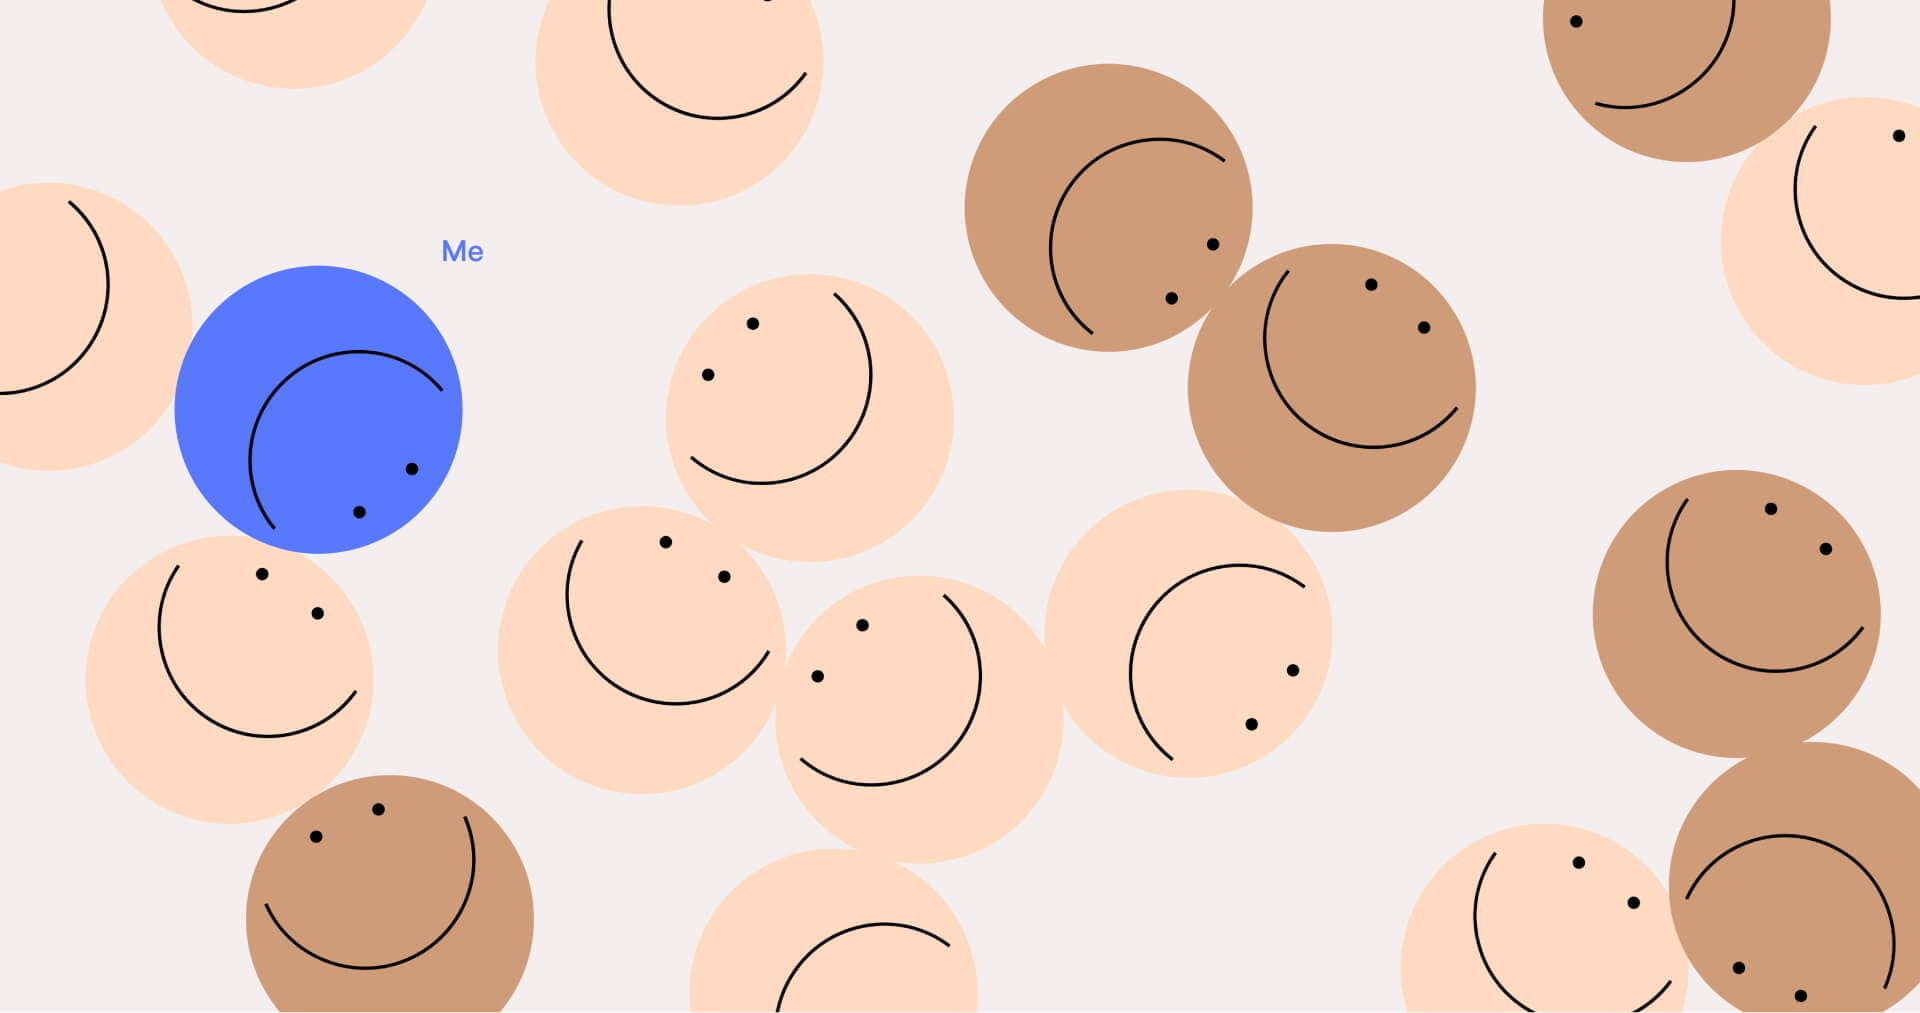 Pattern of smily faces on soft background